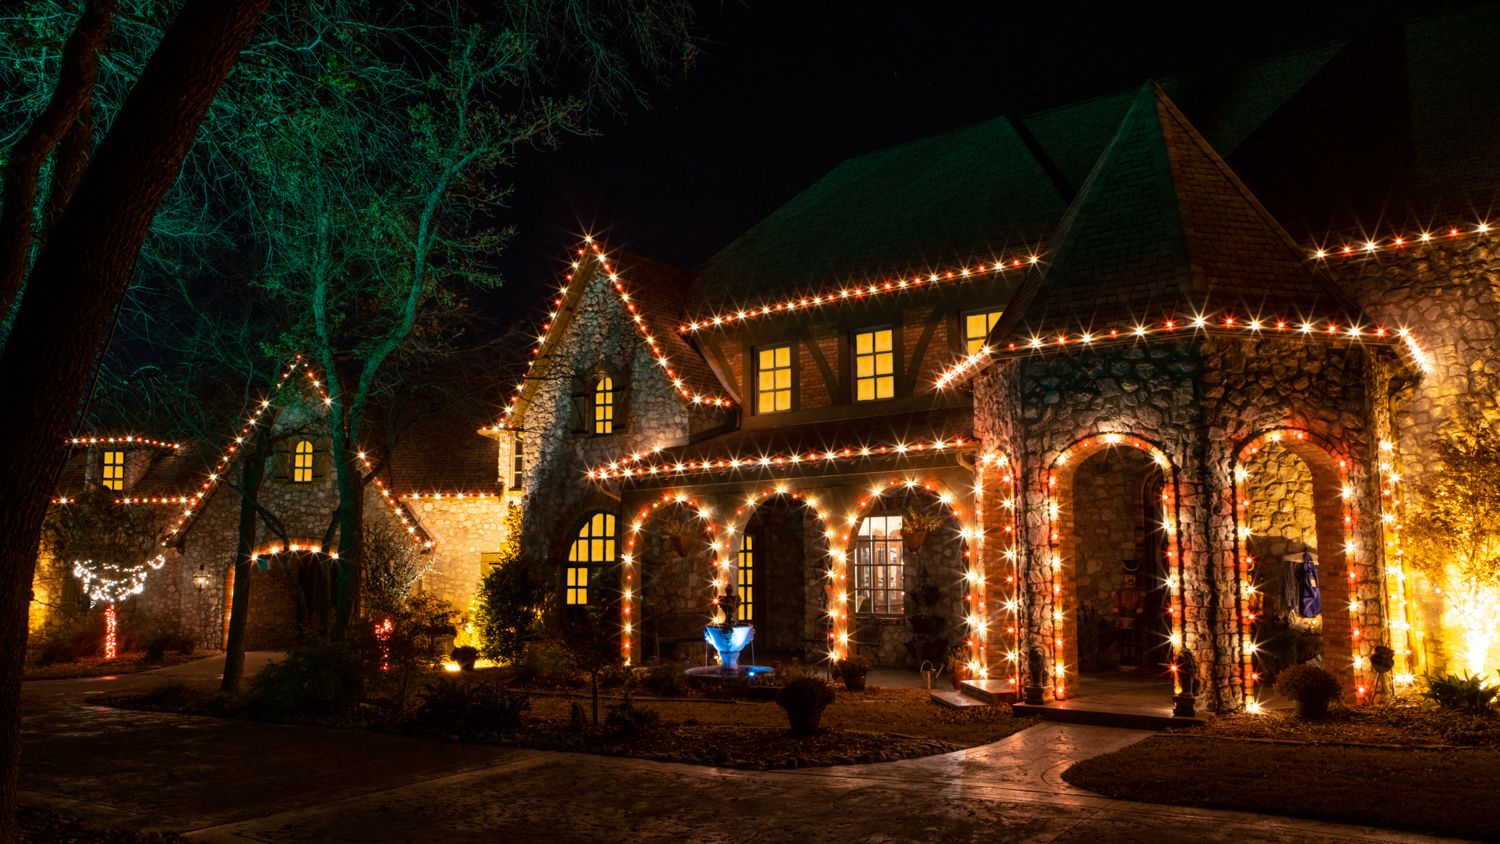 House with professional holiday lighting